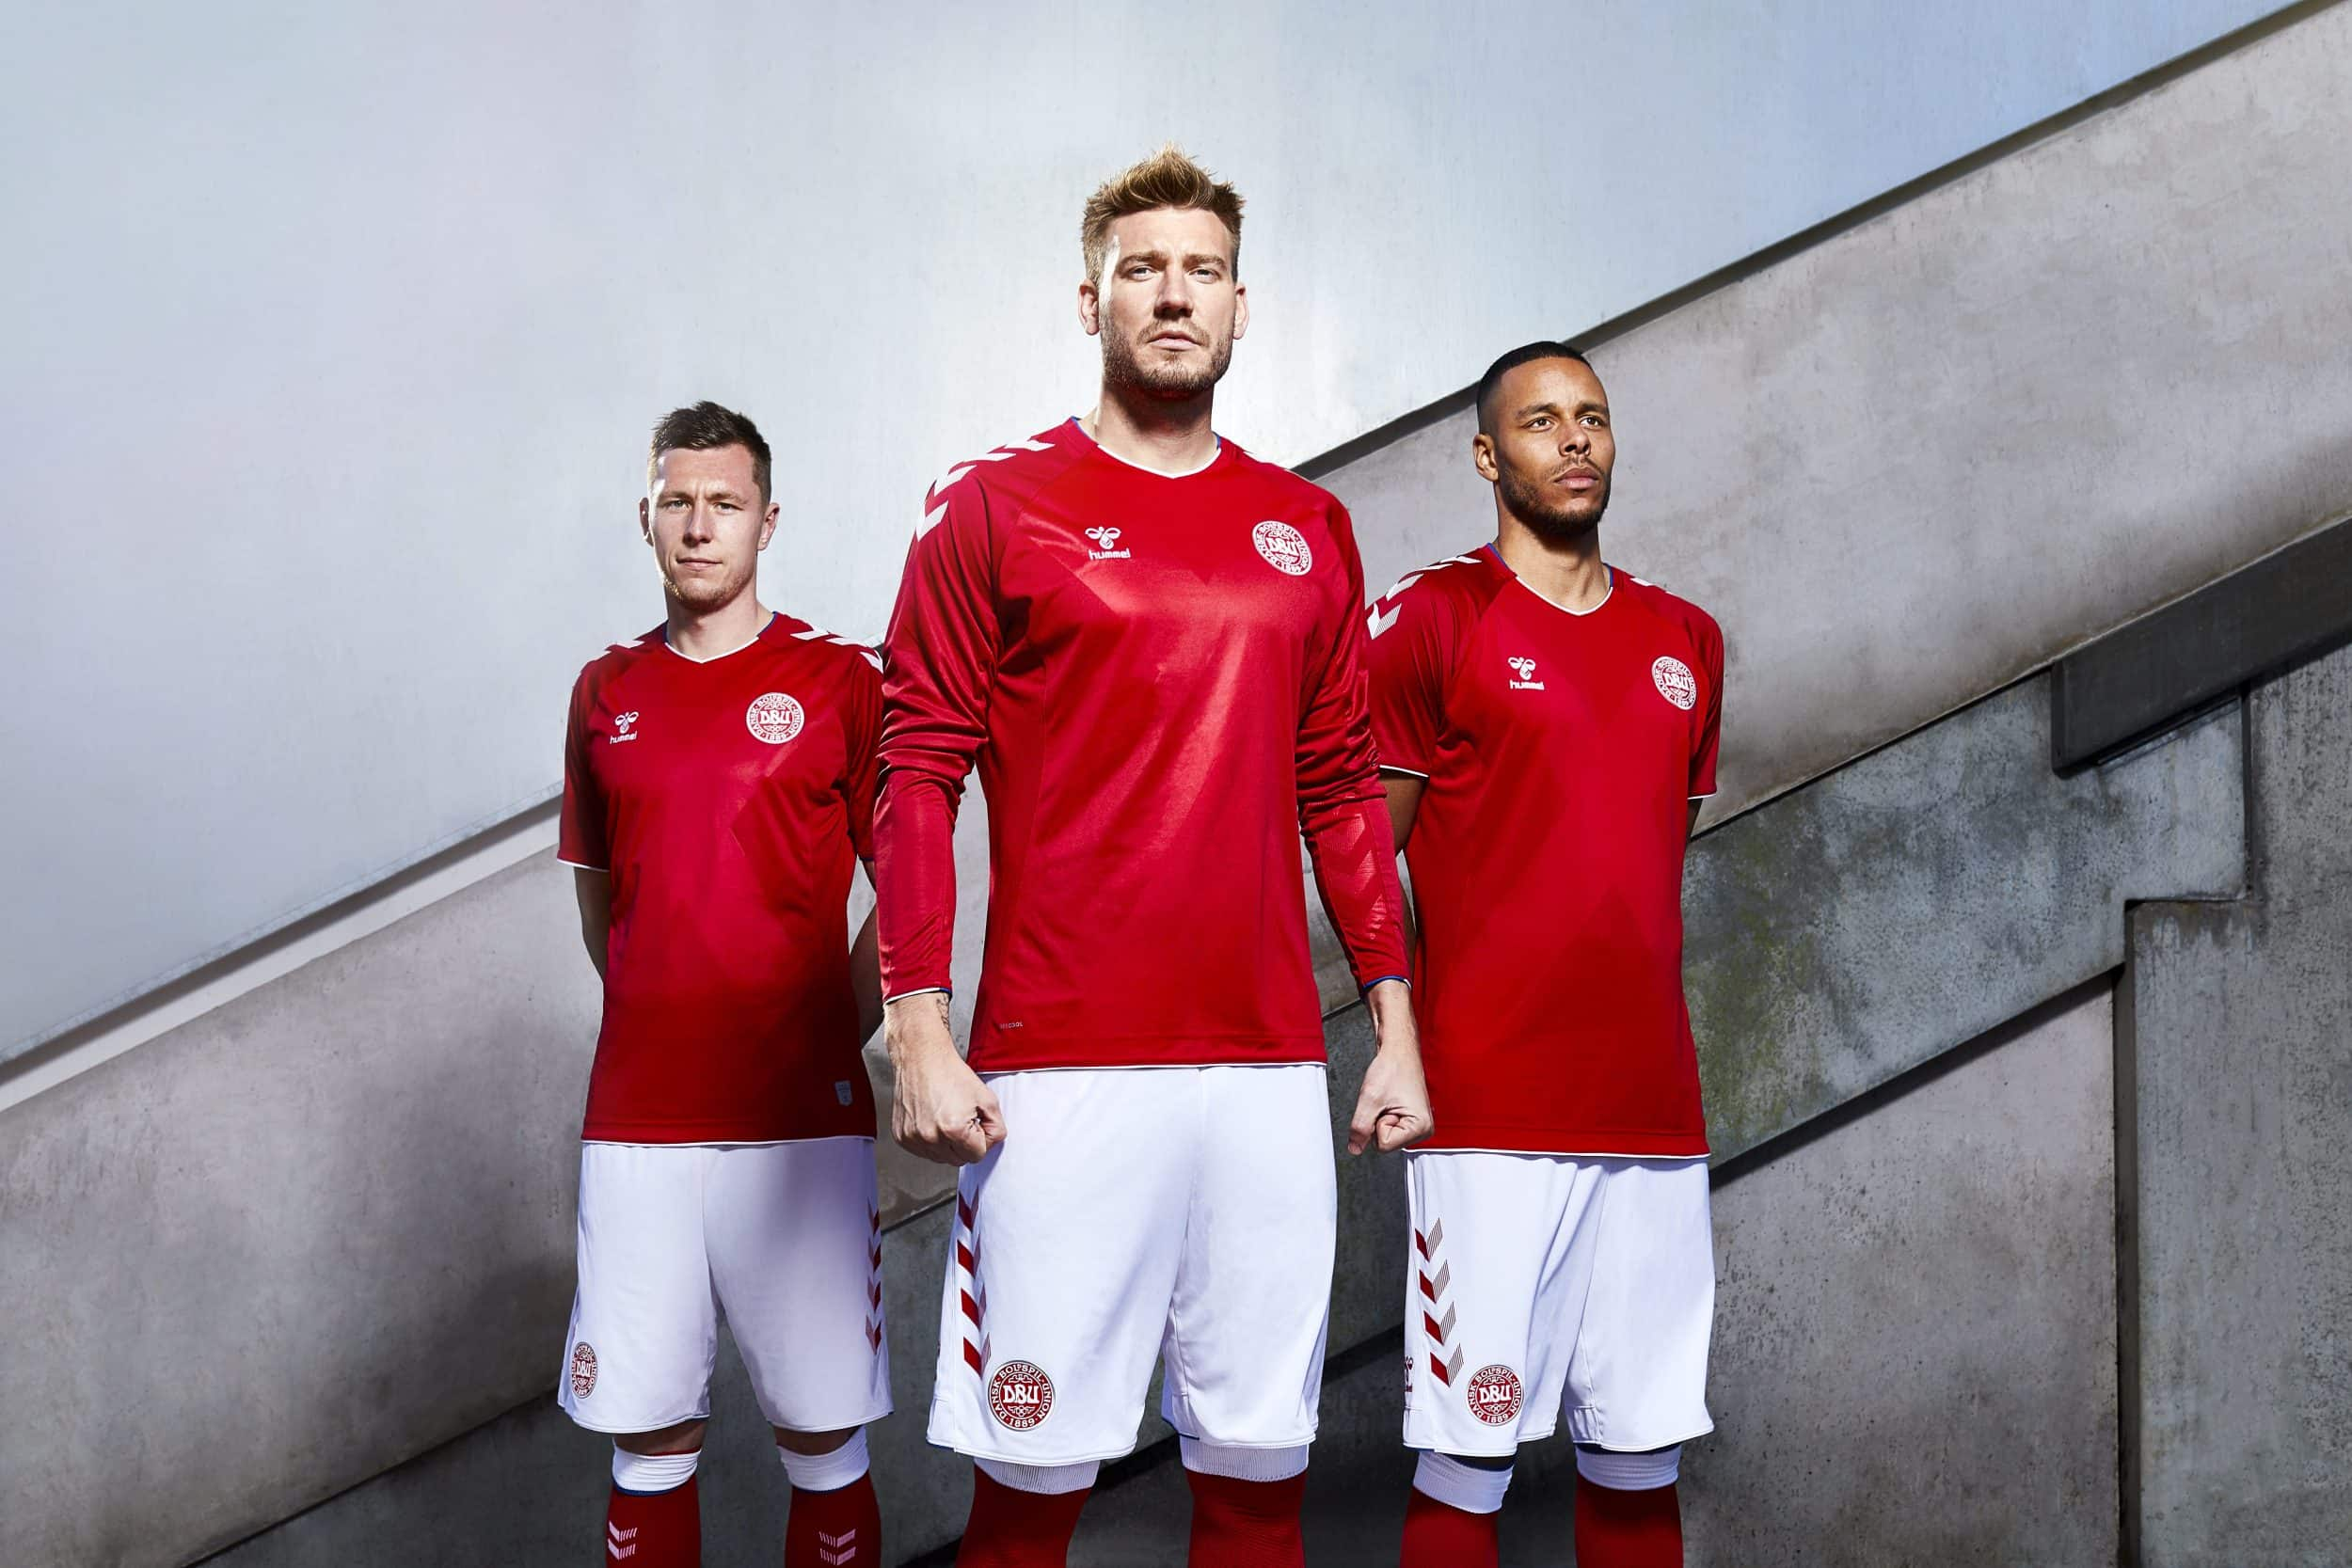 maillot-football-selection-danemark-coupe-du-monde-2018-1